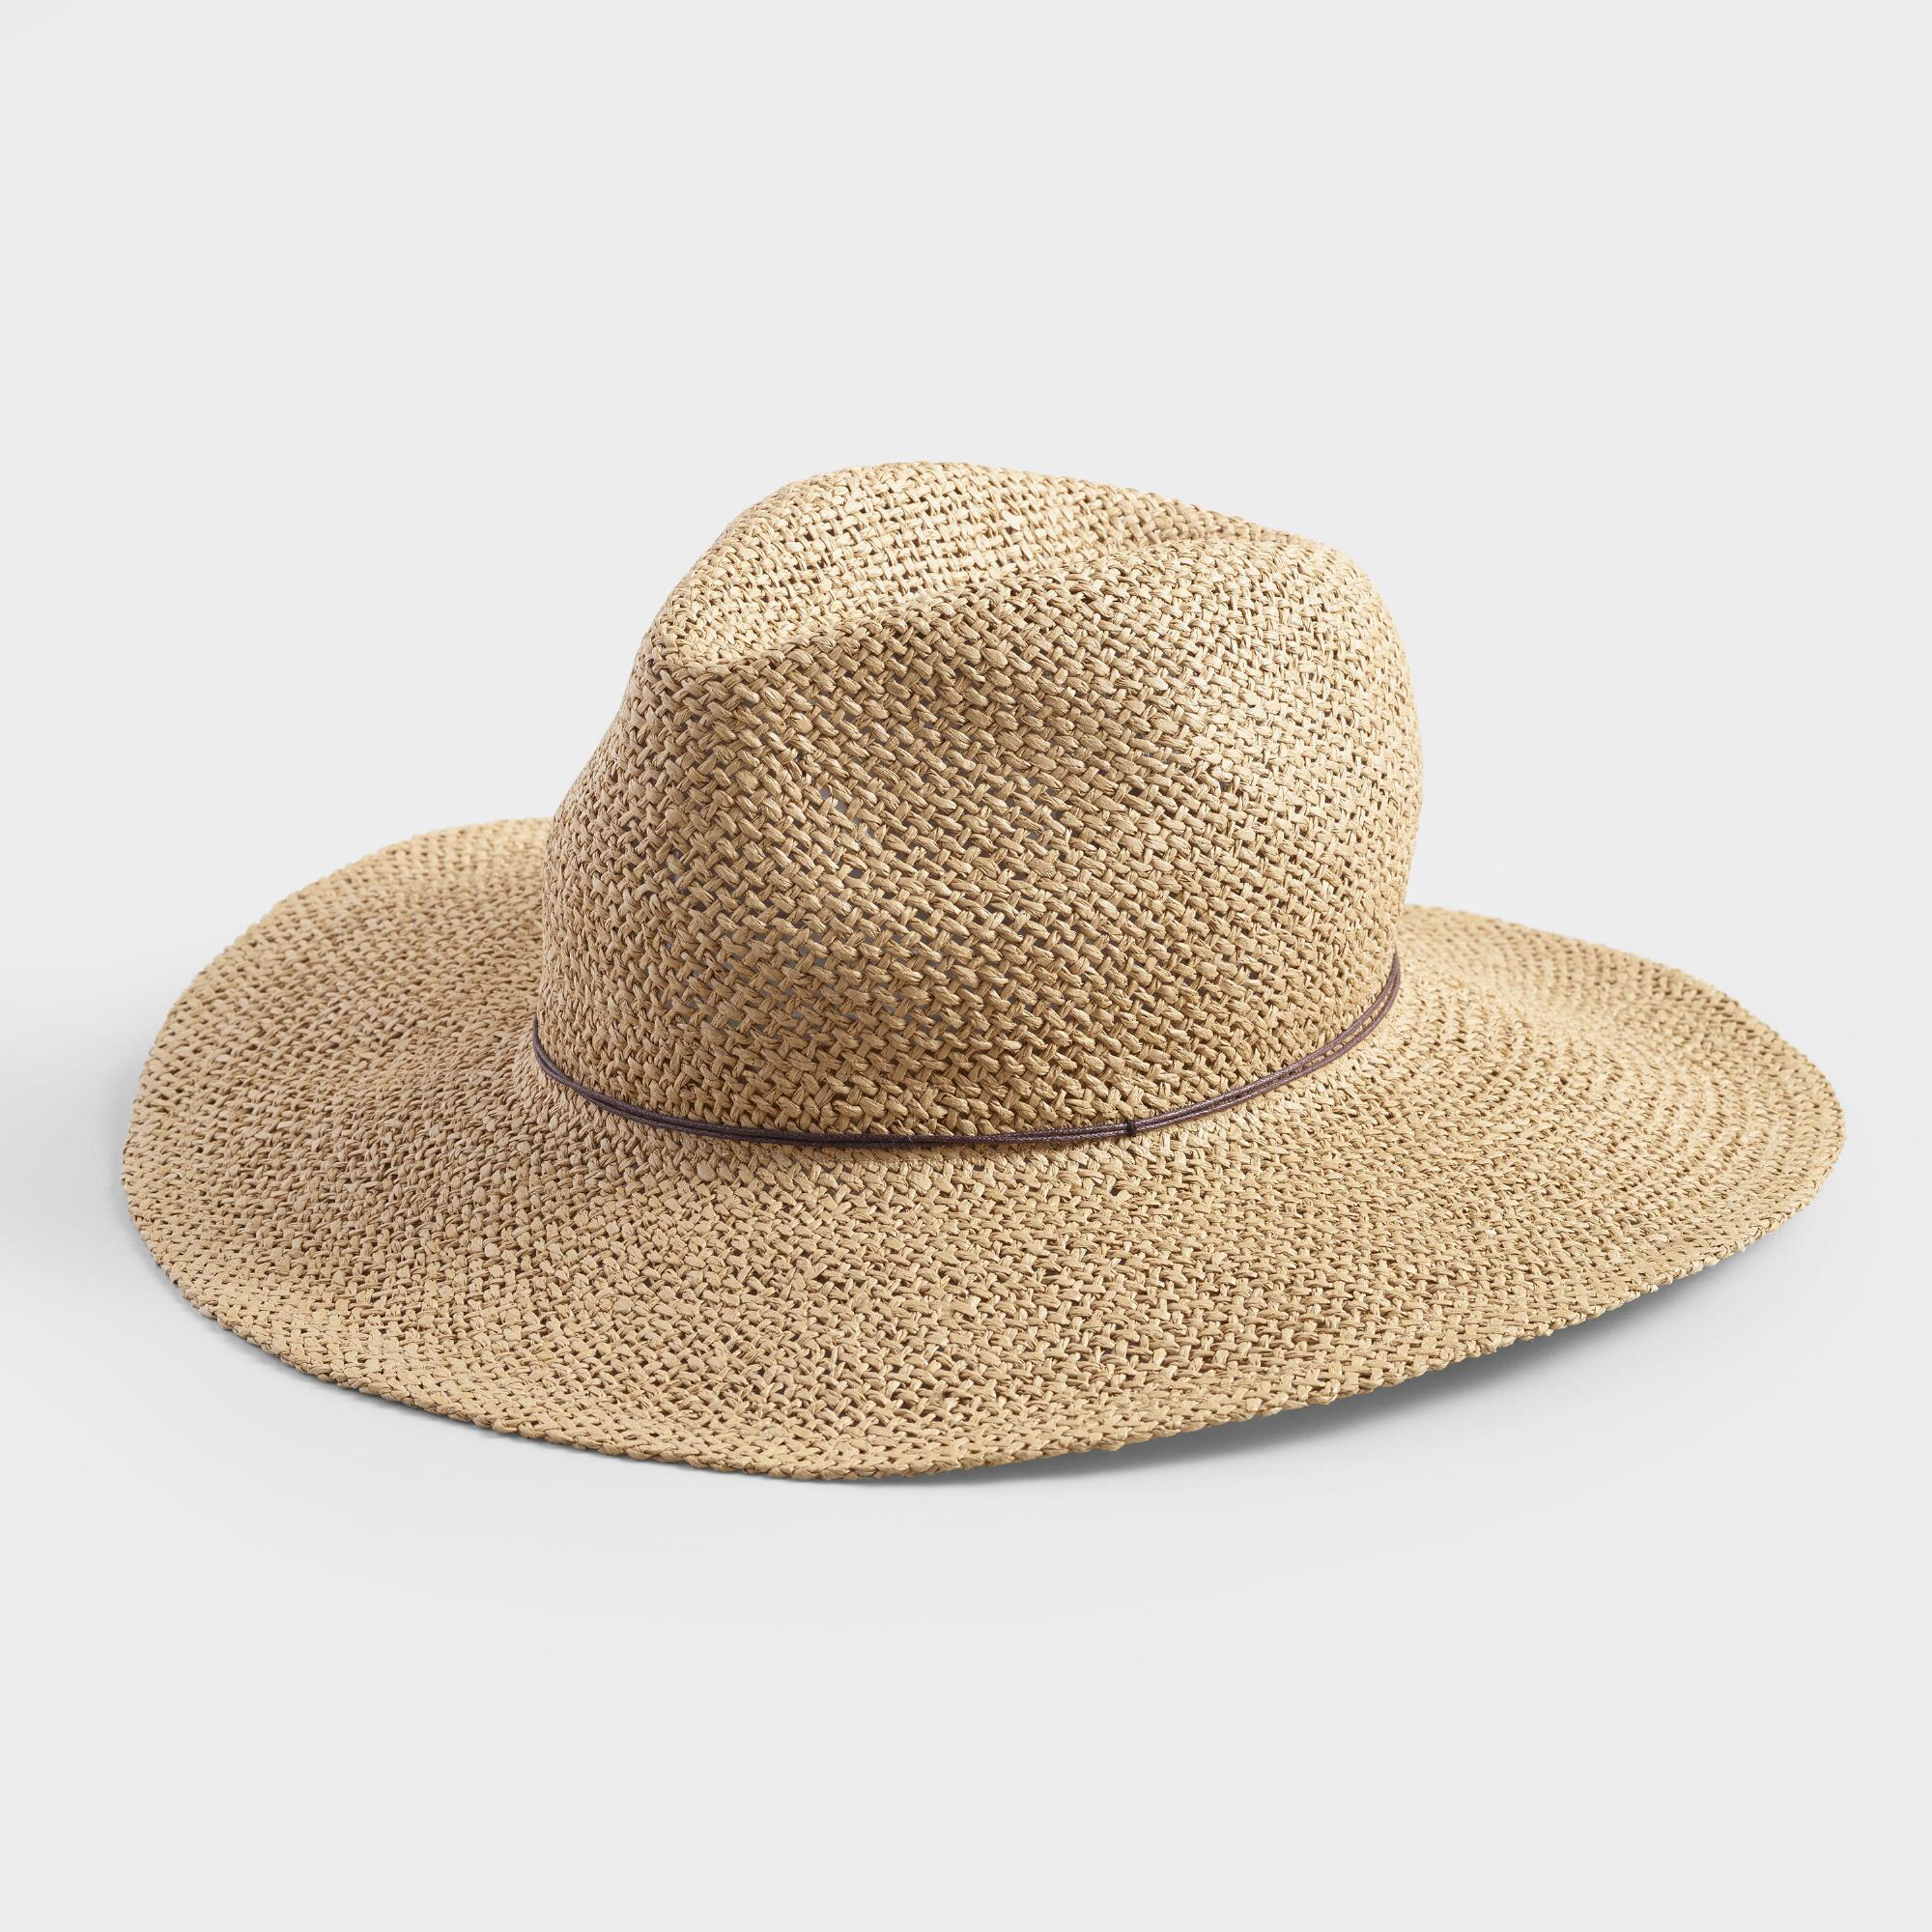 eacf1dd05 Tan Straw Rancher Hat by World Market | Products in 2019 | Hats ...